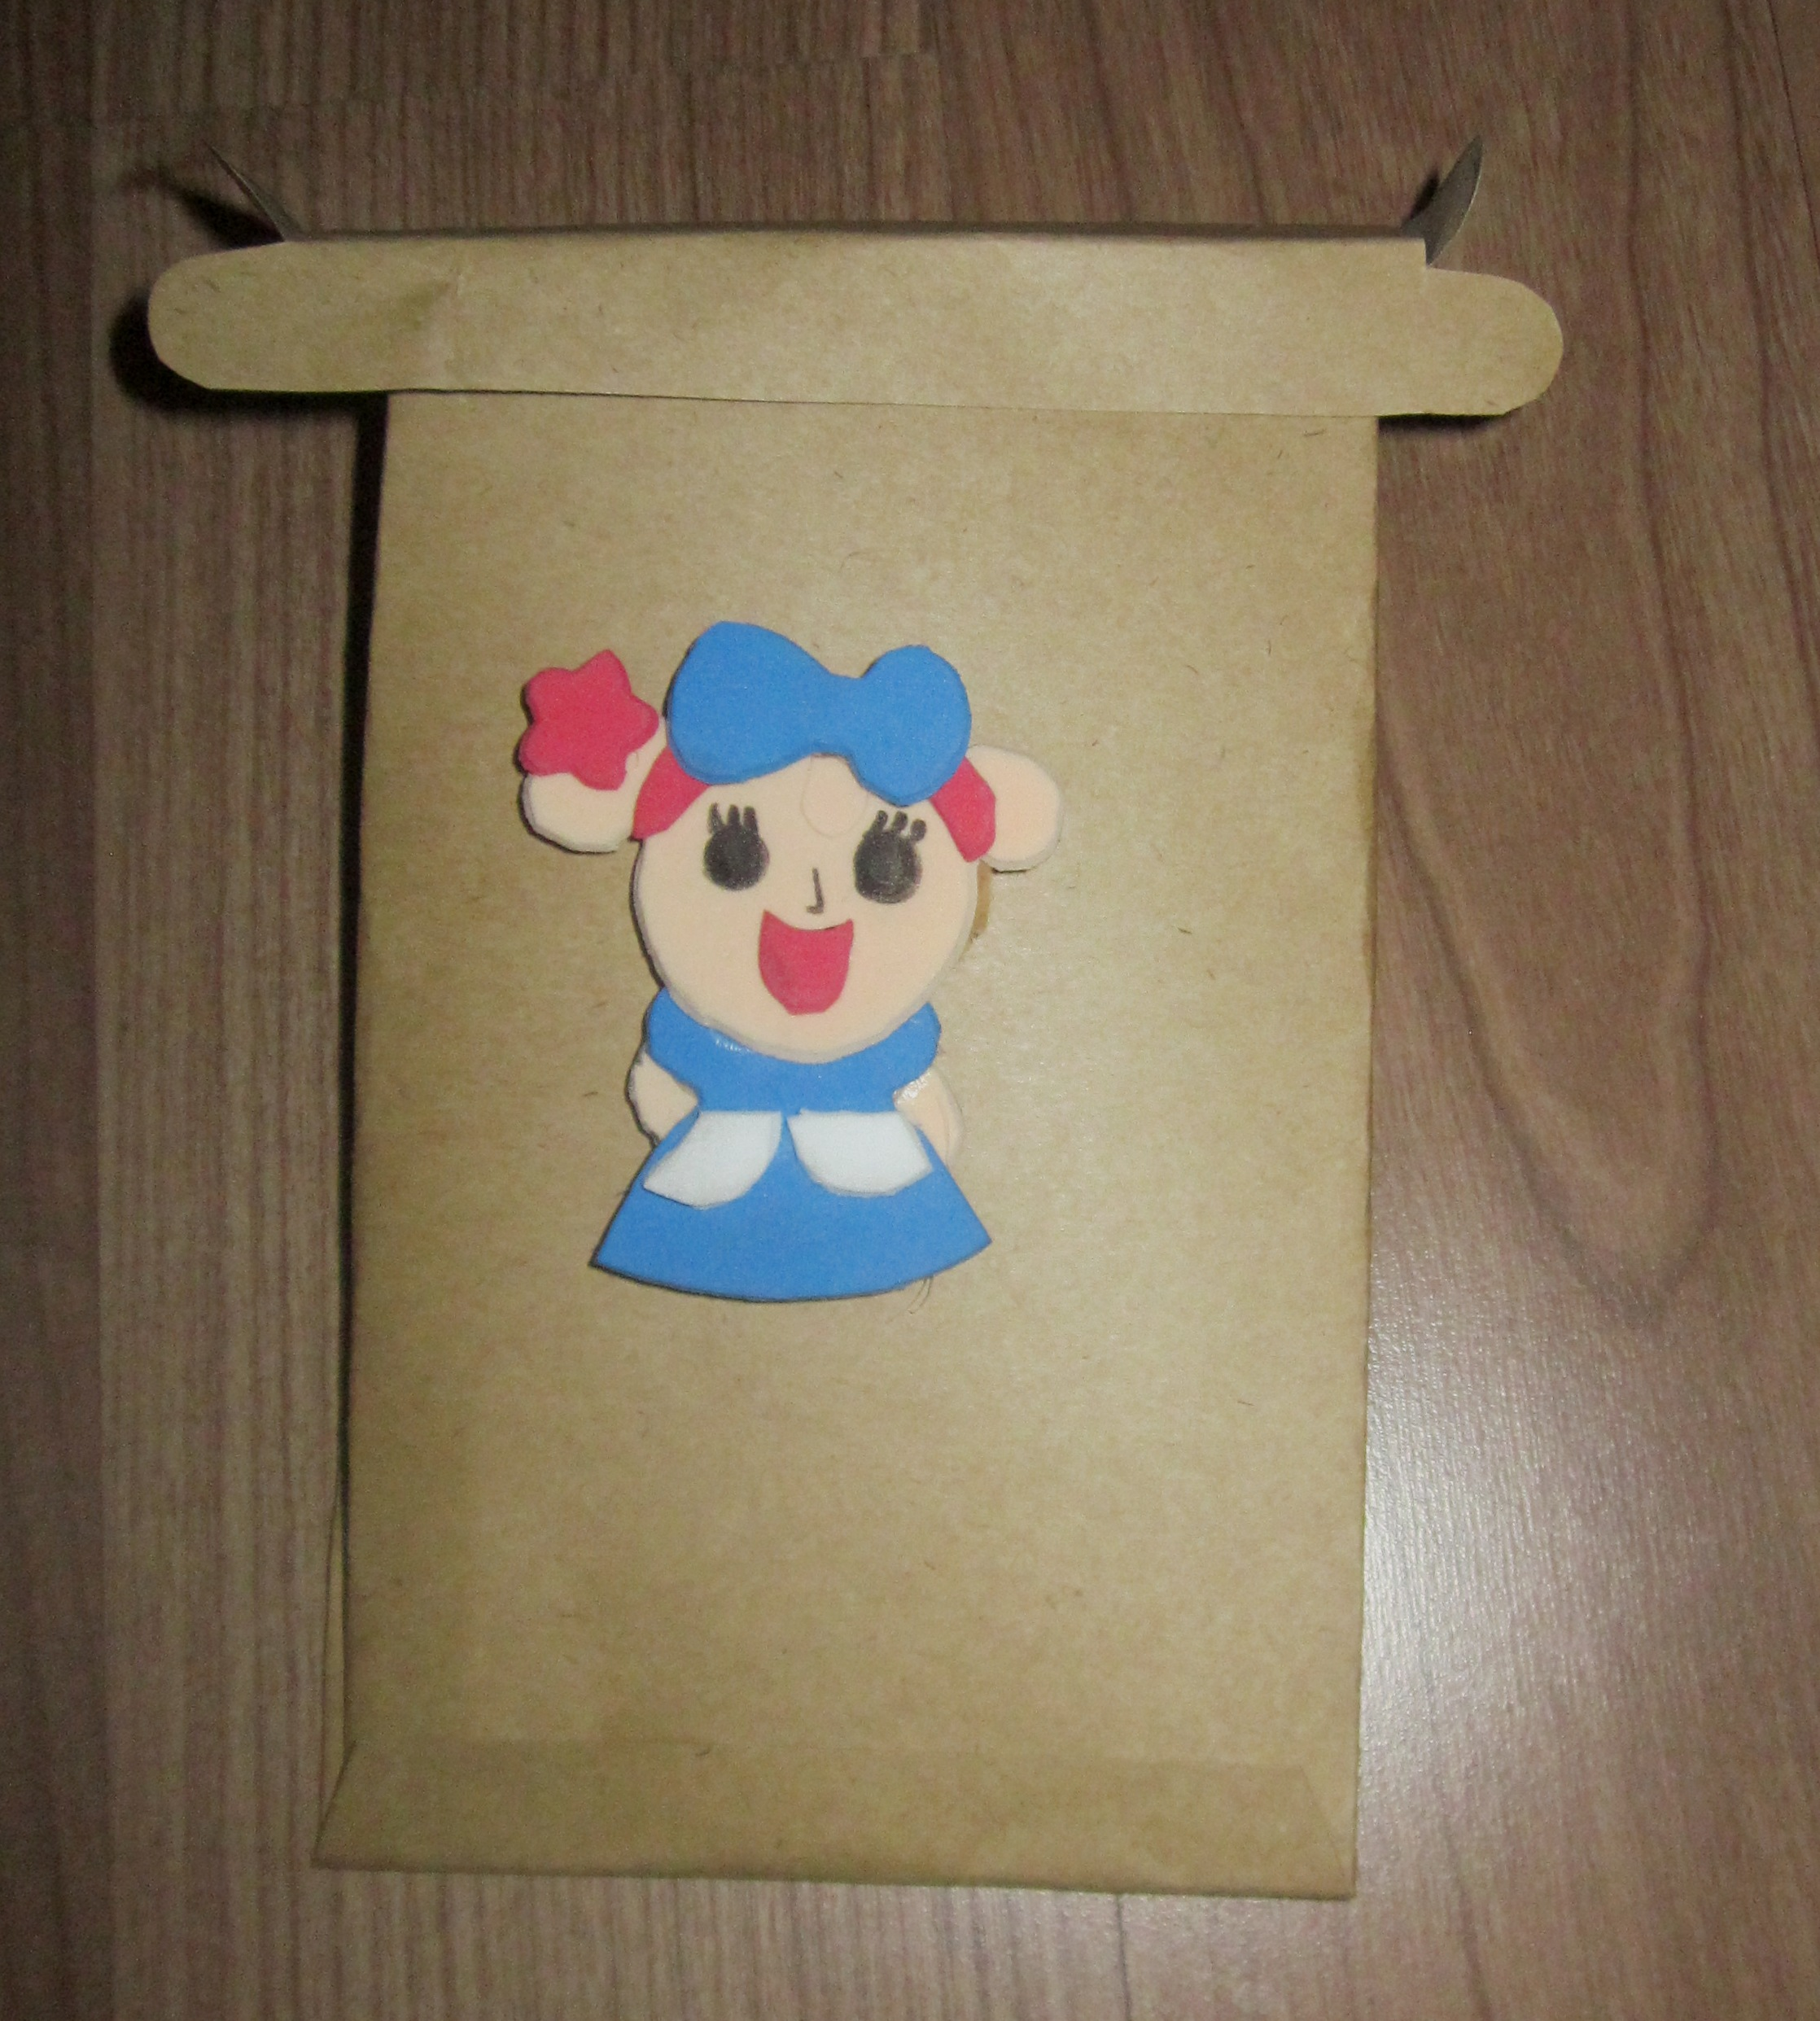 Picture of Glue Miss La Sen Doll on the Box